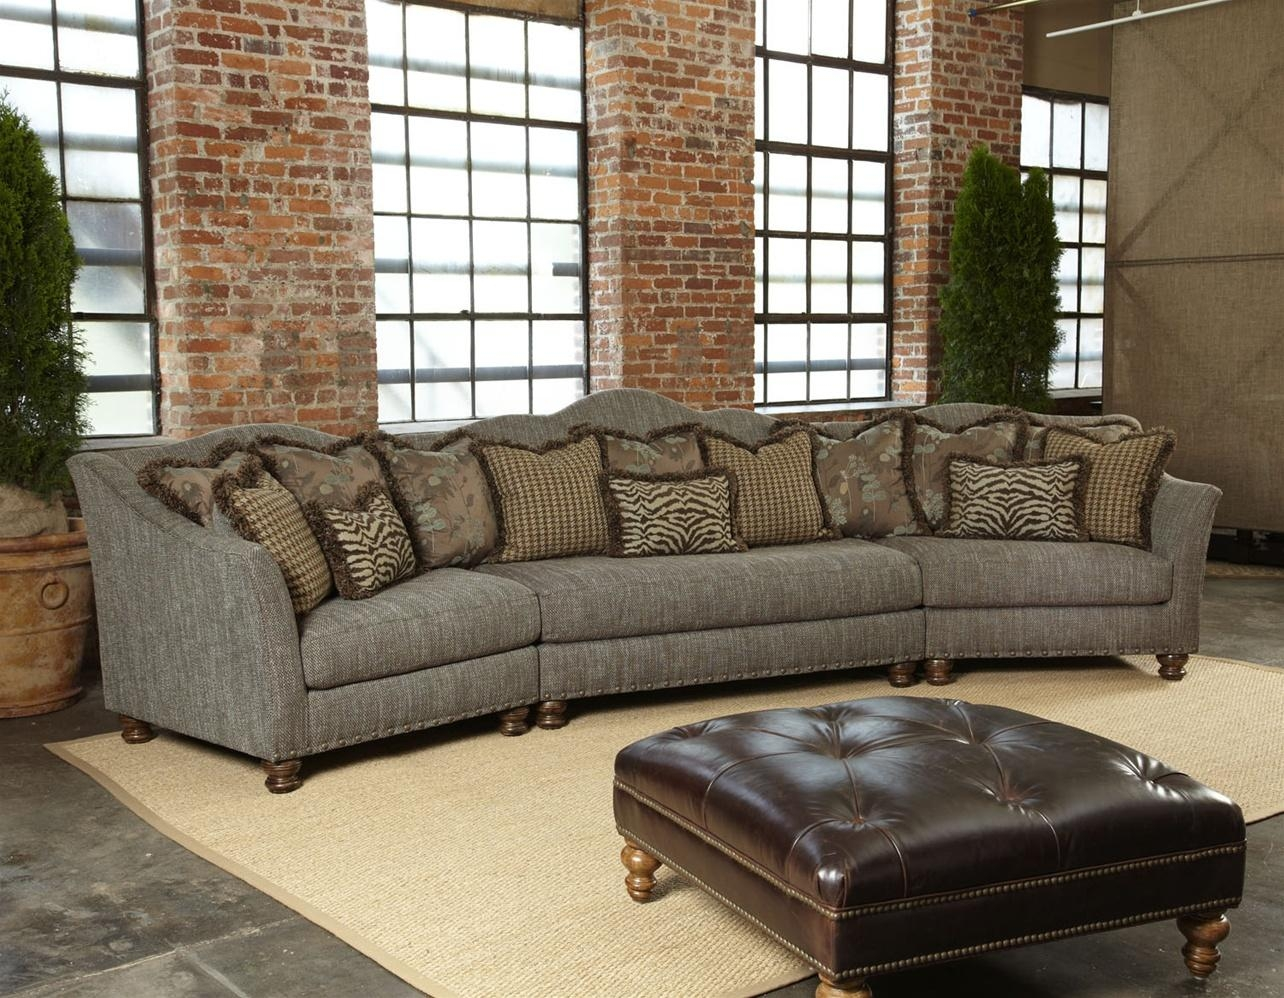 High Quality Sectional Sofa | Home Srg For High Quality Leather Sectional (Image 9 of 20)